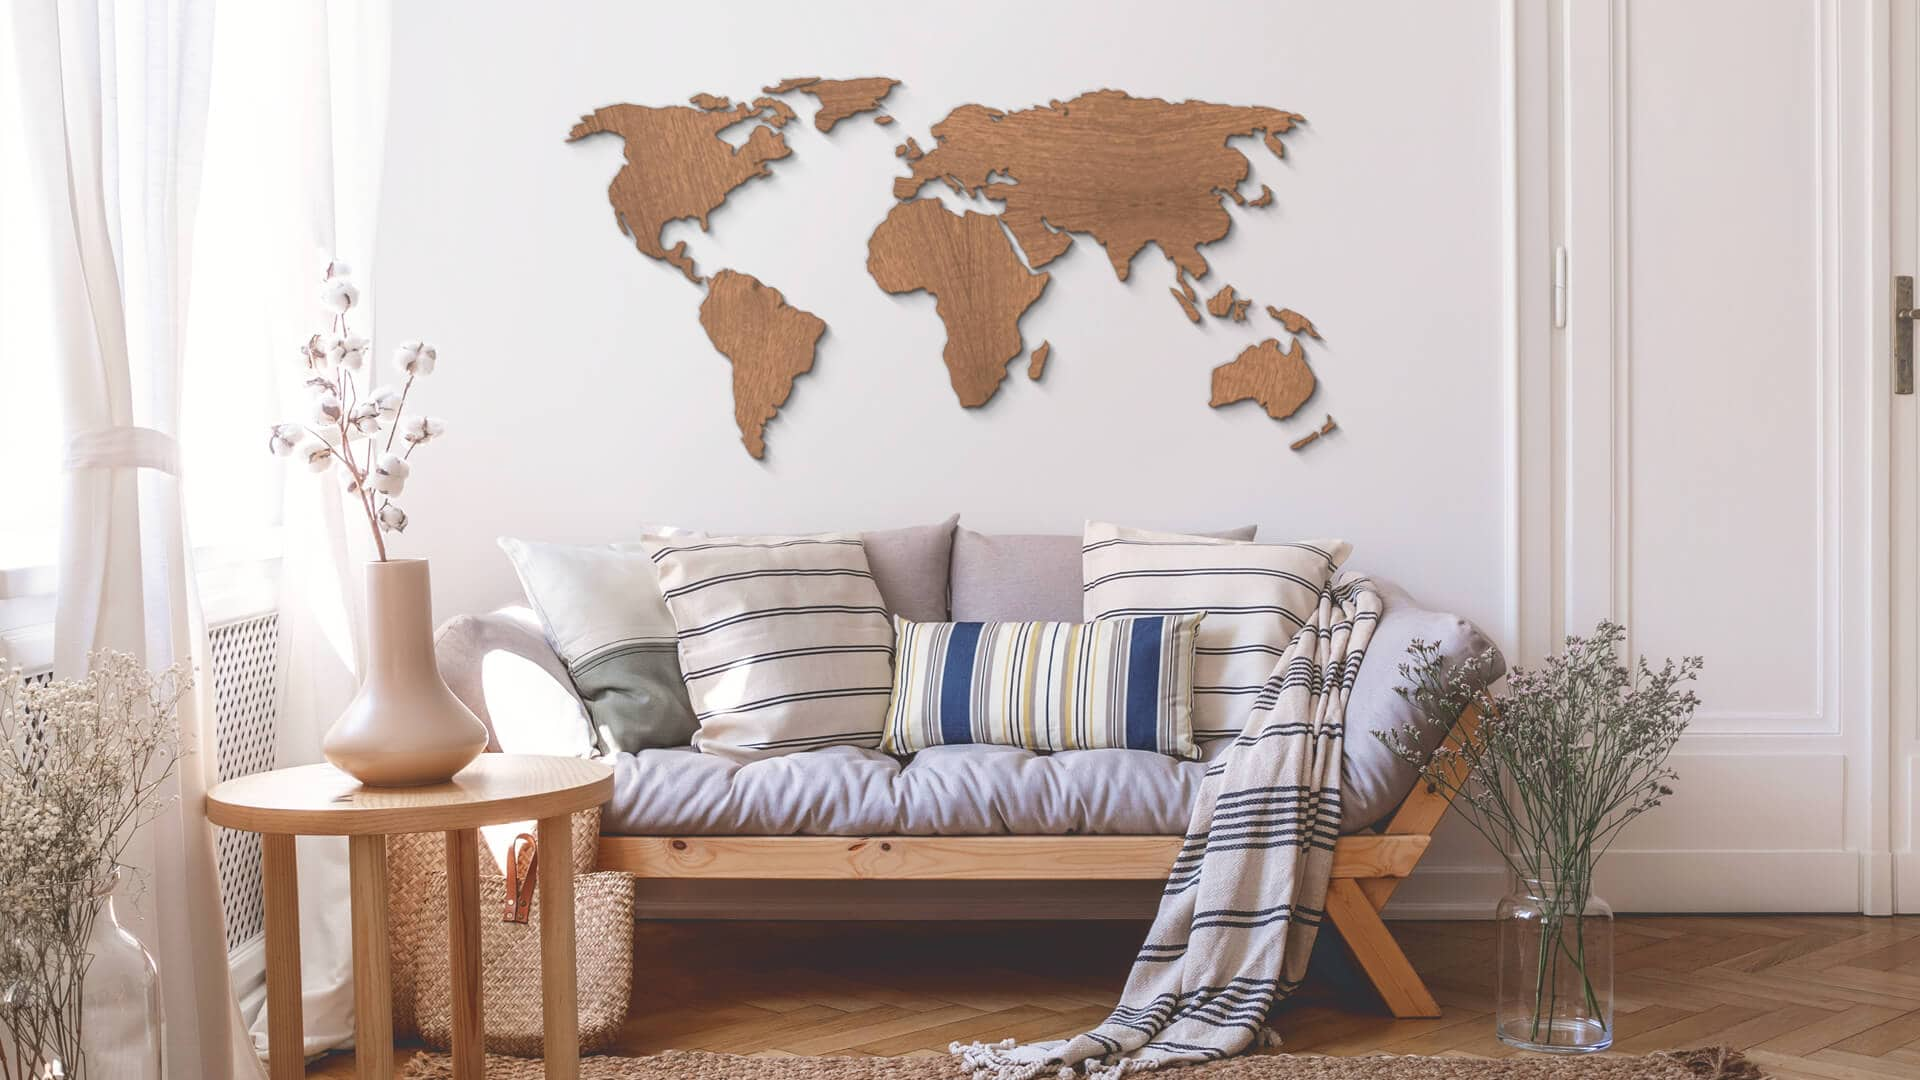 cheap wall art for living room decorating ideas side tables in the shop stickers photo wallpapers glass and world maps